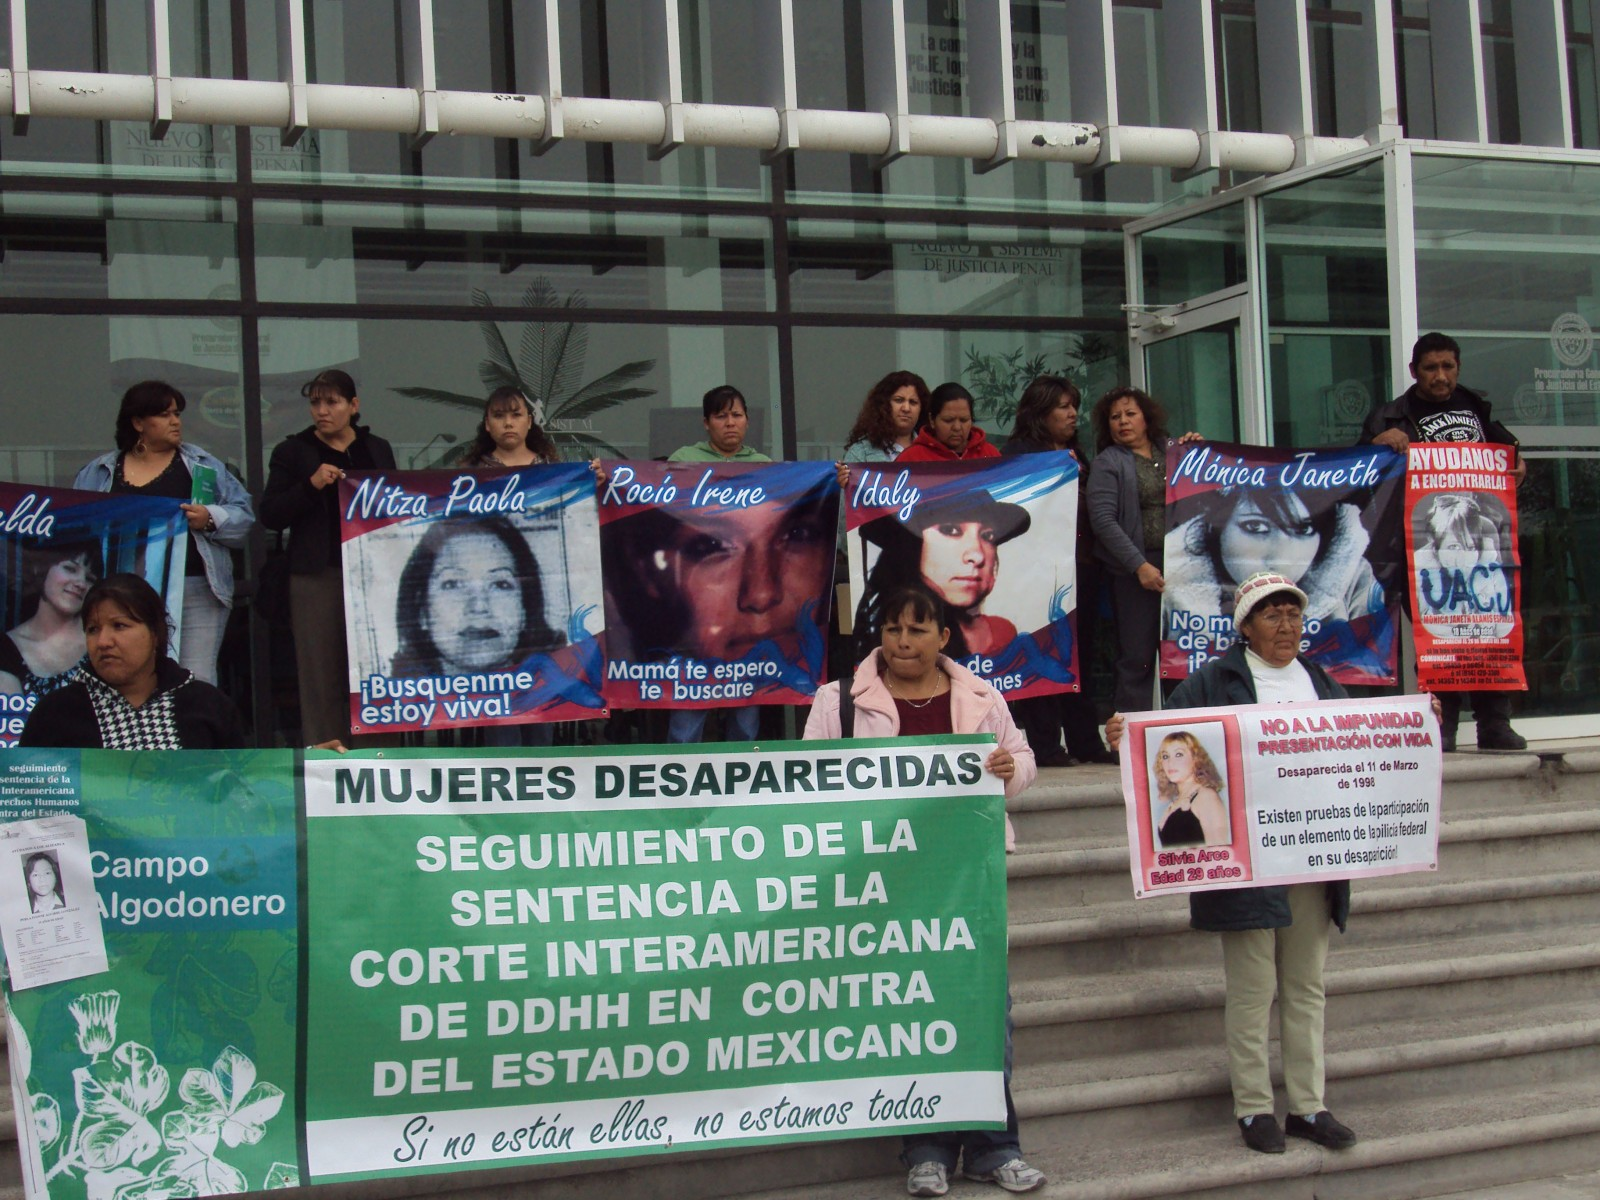 Photograph 1 Protests On Behalf Of The Missing Girls And Young Ladies  Photograph By Julia Mon�rrez (2010)